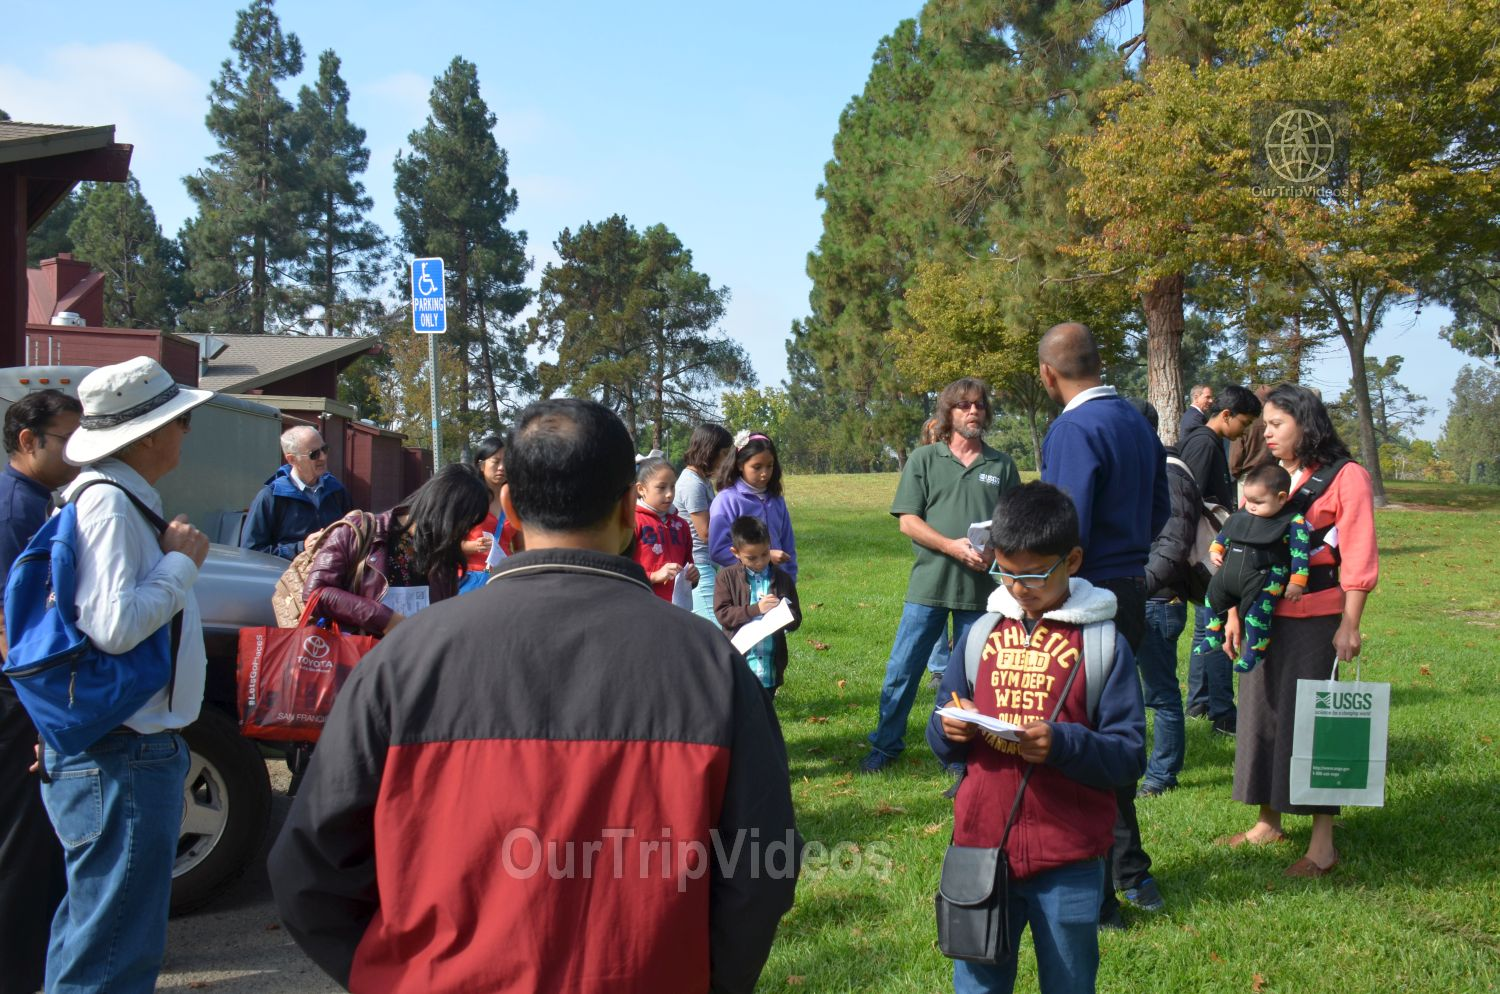 150th Celebration of 1868 Great Quake on Hayward Fault, Fremont, CA, USA - Picture 17 of 25